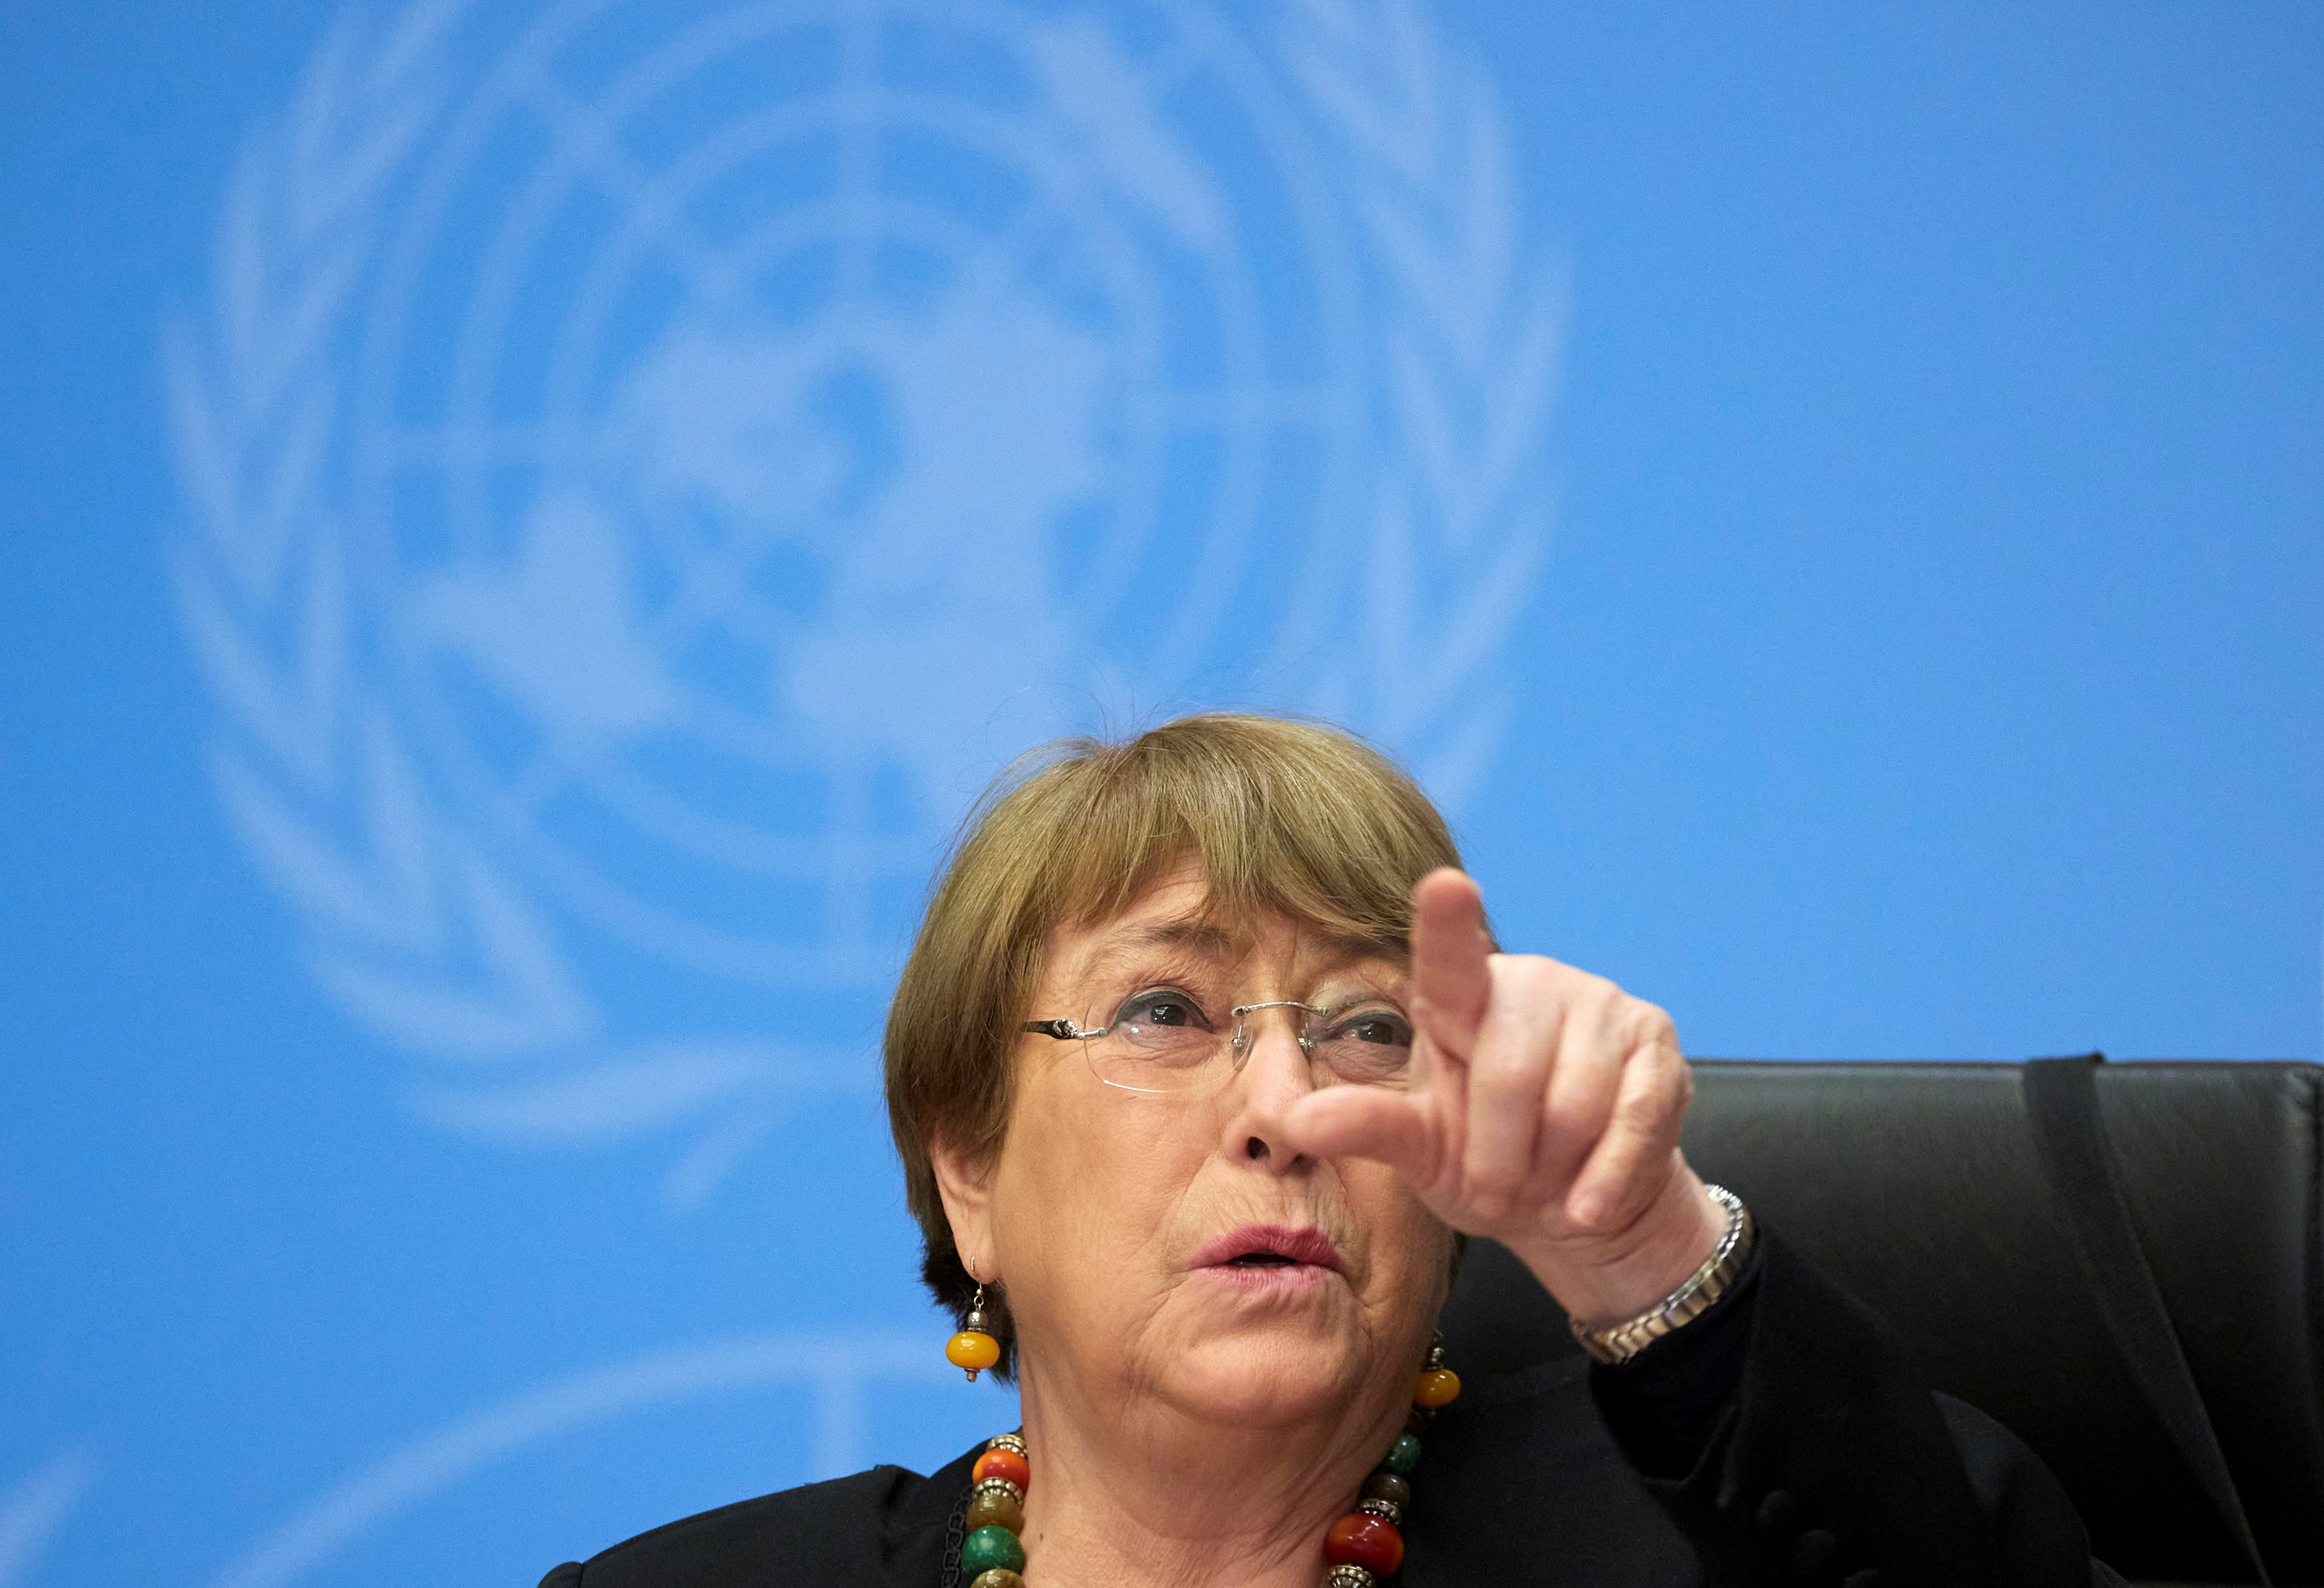 U.N. High Commissioner for Human Rights Michelle Bachelet gestures during a news conference at the European headquarters of the United Nations in Geneva, Switzerland, December 9, 2020. REUTERS/Denis Balibouse